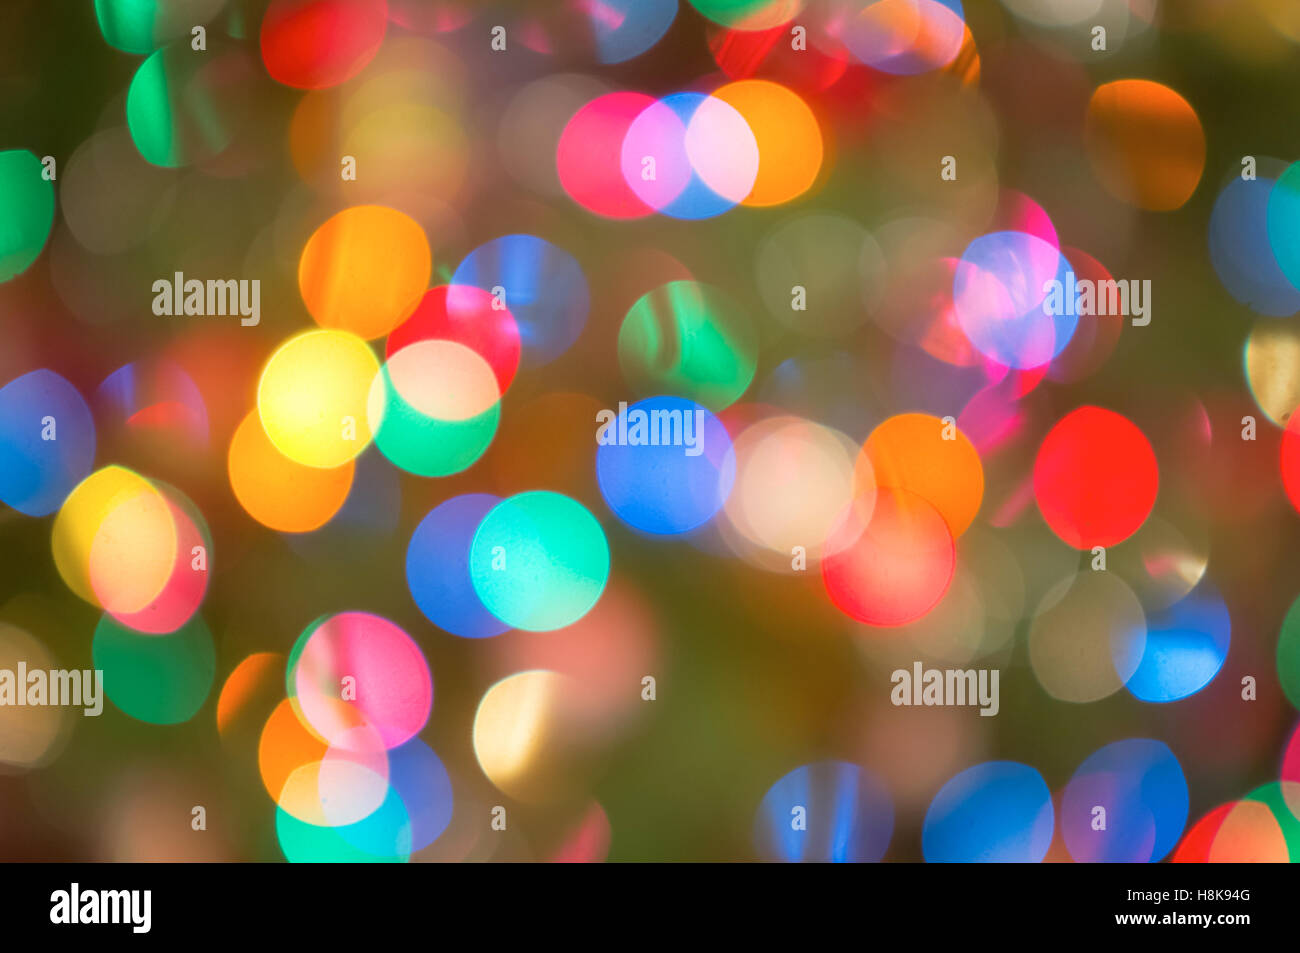 A background of colourful Christmas lights, thrown out of focus - Stock Image